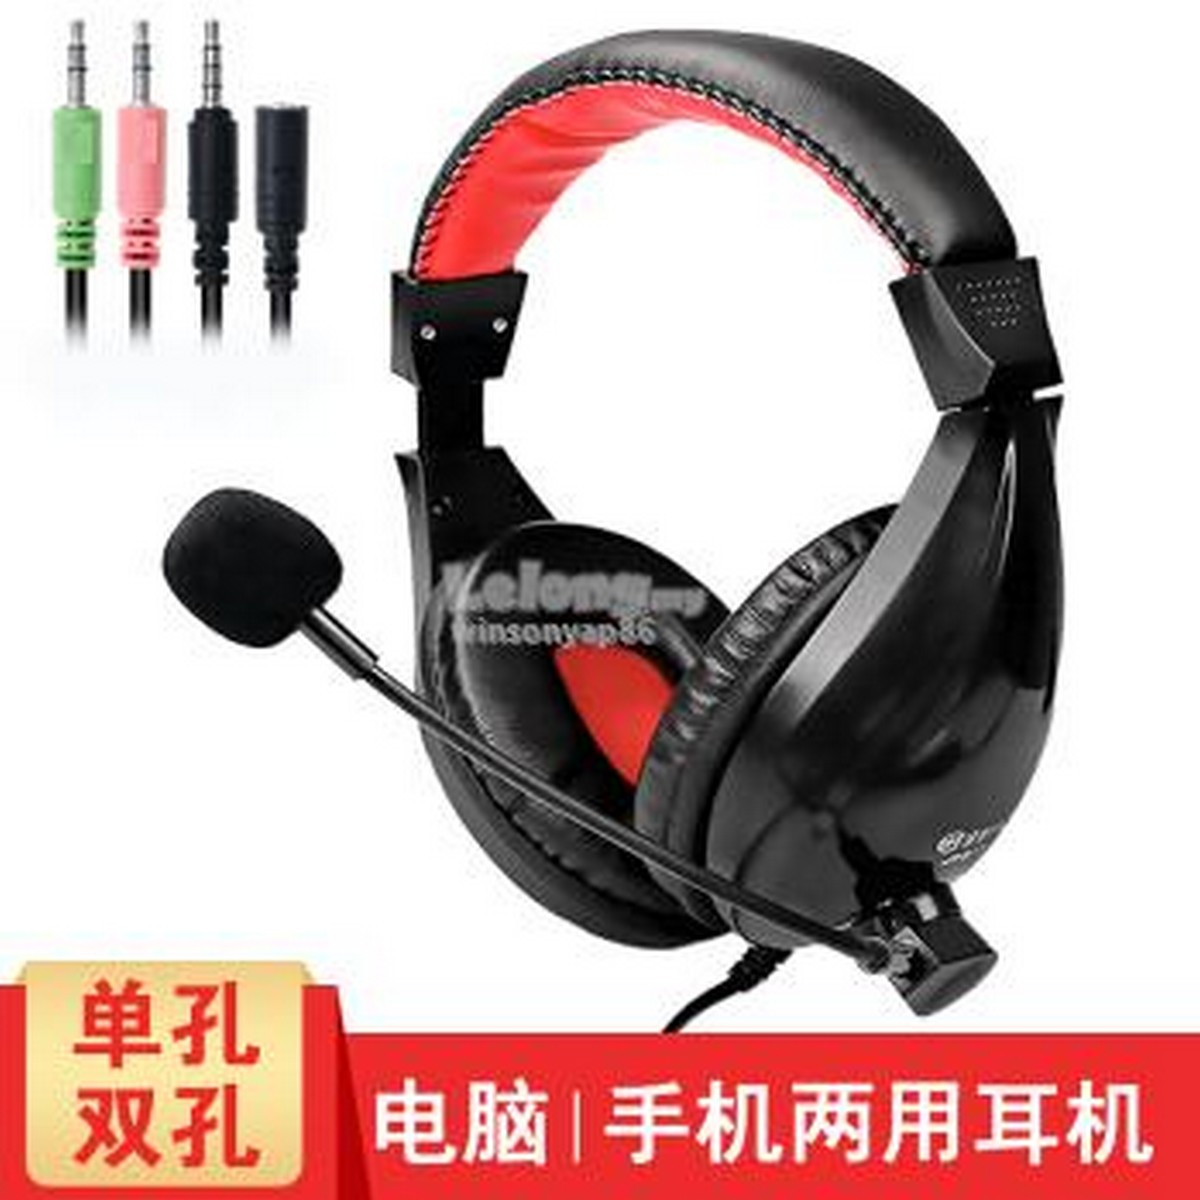 JITENG - JT-813 - Gaming Headset With Mic for PC and Cellphone - Computer Headphones - Dual Pin Wired Headset For PC And Dual AUX Port Devices Headphone for Mobile Phones Best for Online Classes / Work From Home / PUBG - PS4 Gaming